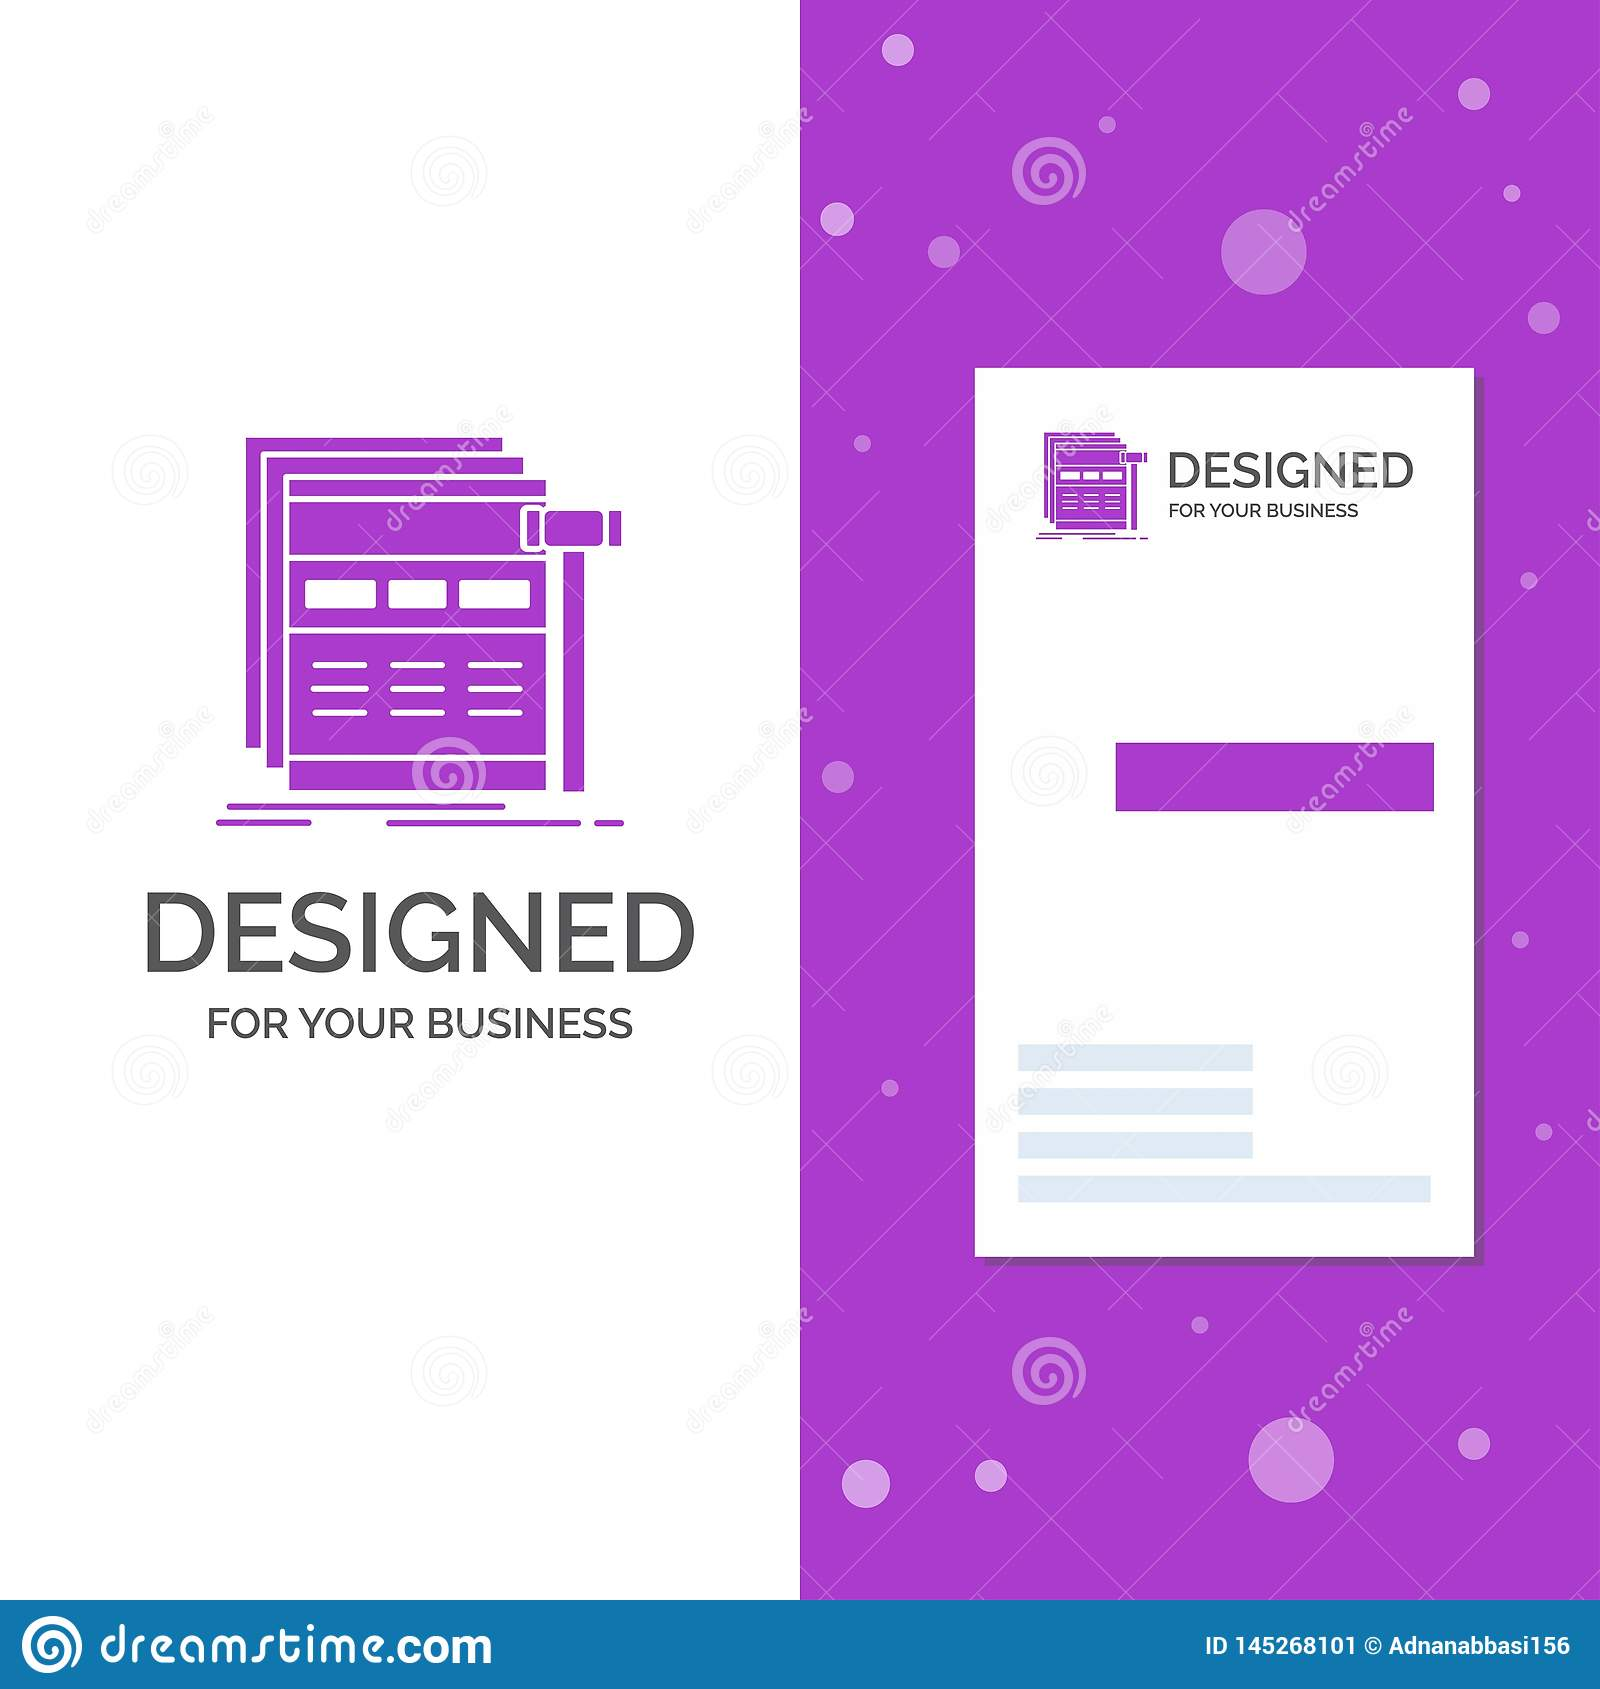 Business Logo for Internet, page, web, webpage, wireframe. Vertical Purple Business / Visiting Card template. Creative background